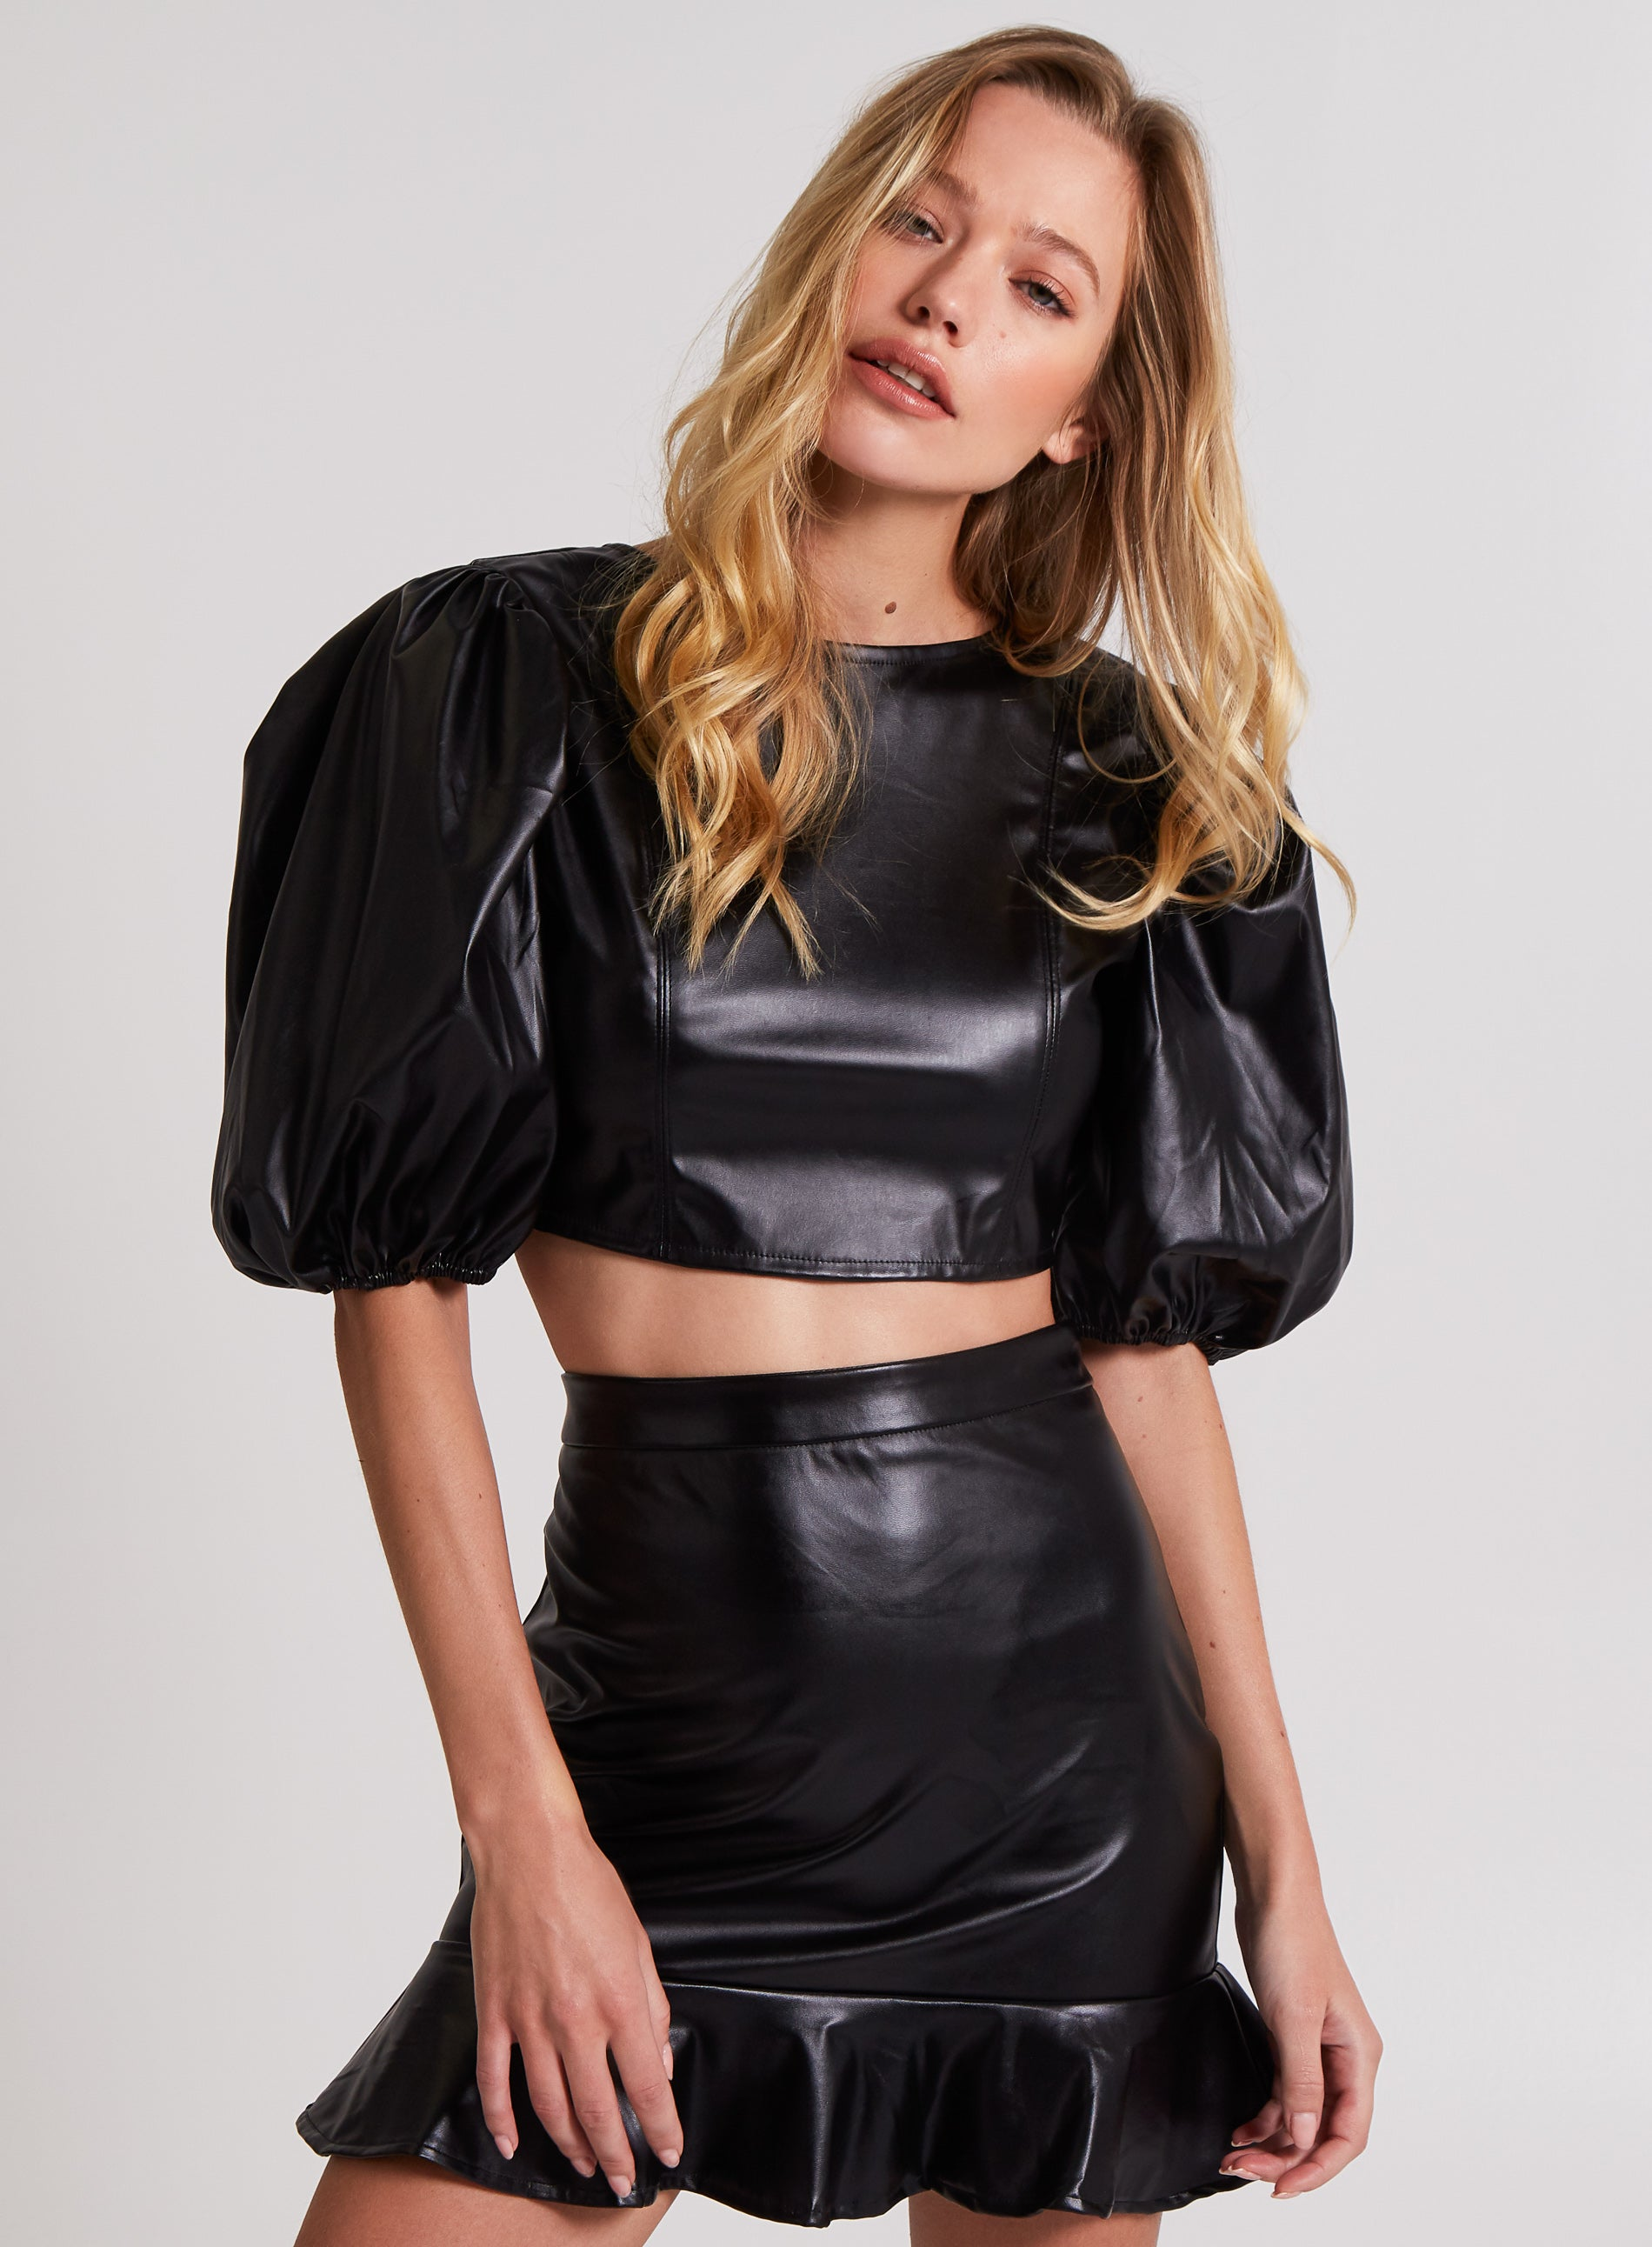 NAUGHTY - Puff Sleeve Tie Back Vegan Leather Top